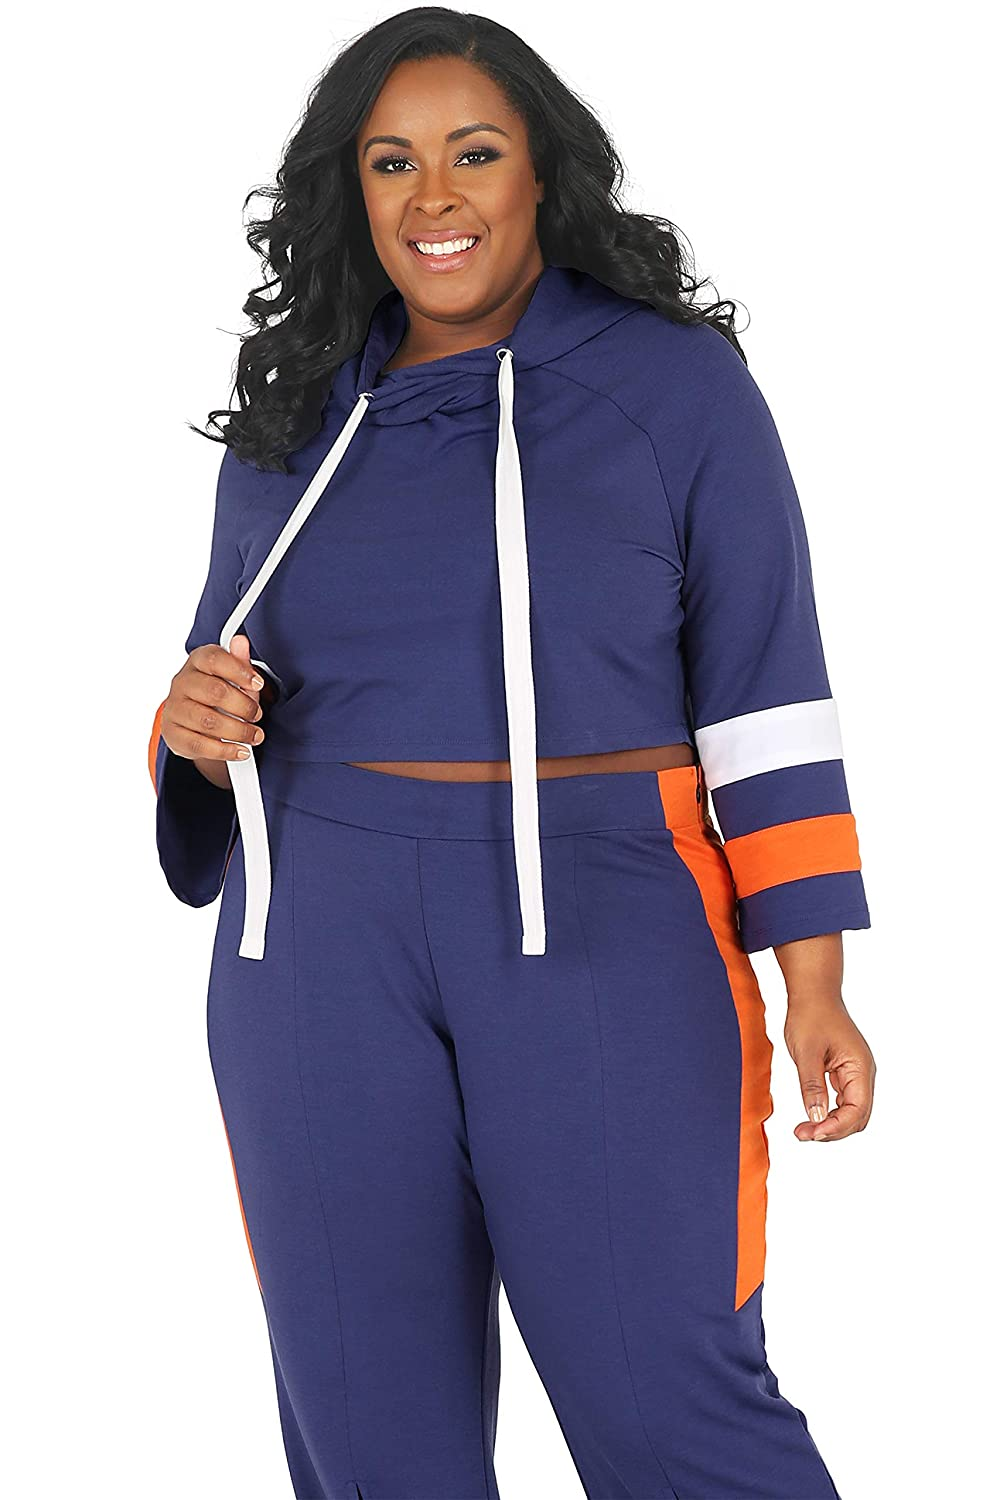 3eba37d4771 Poetic Justice Plus Size Curvy Women s Navy Orange Flare Sleeve Cropped  Hoodie at Amazon Women s Clothing store